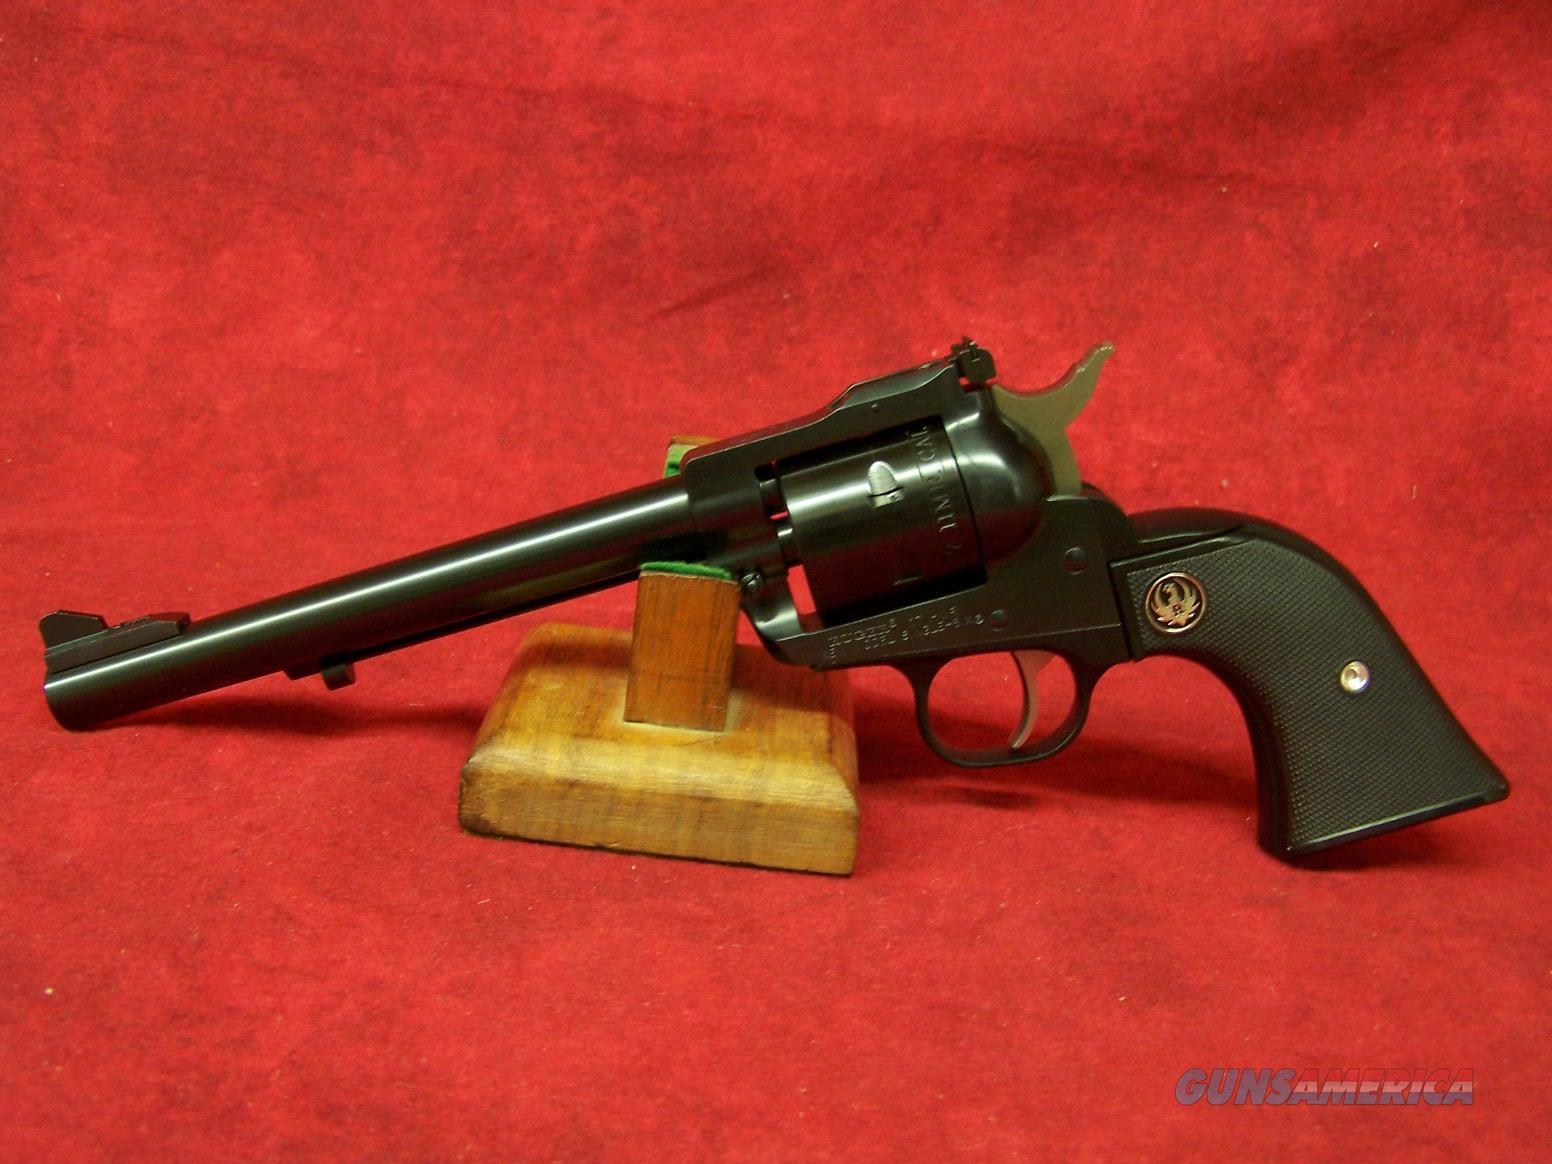 """RUGER SINGLE SIX 17 HMR 6.5"""" AS BLUED 6RD (00661)  Guns > Pistols > Ruger Single Action Revolvers > Single Six Type"""